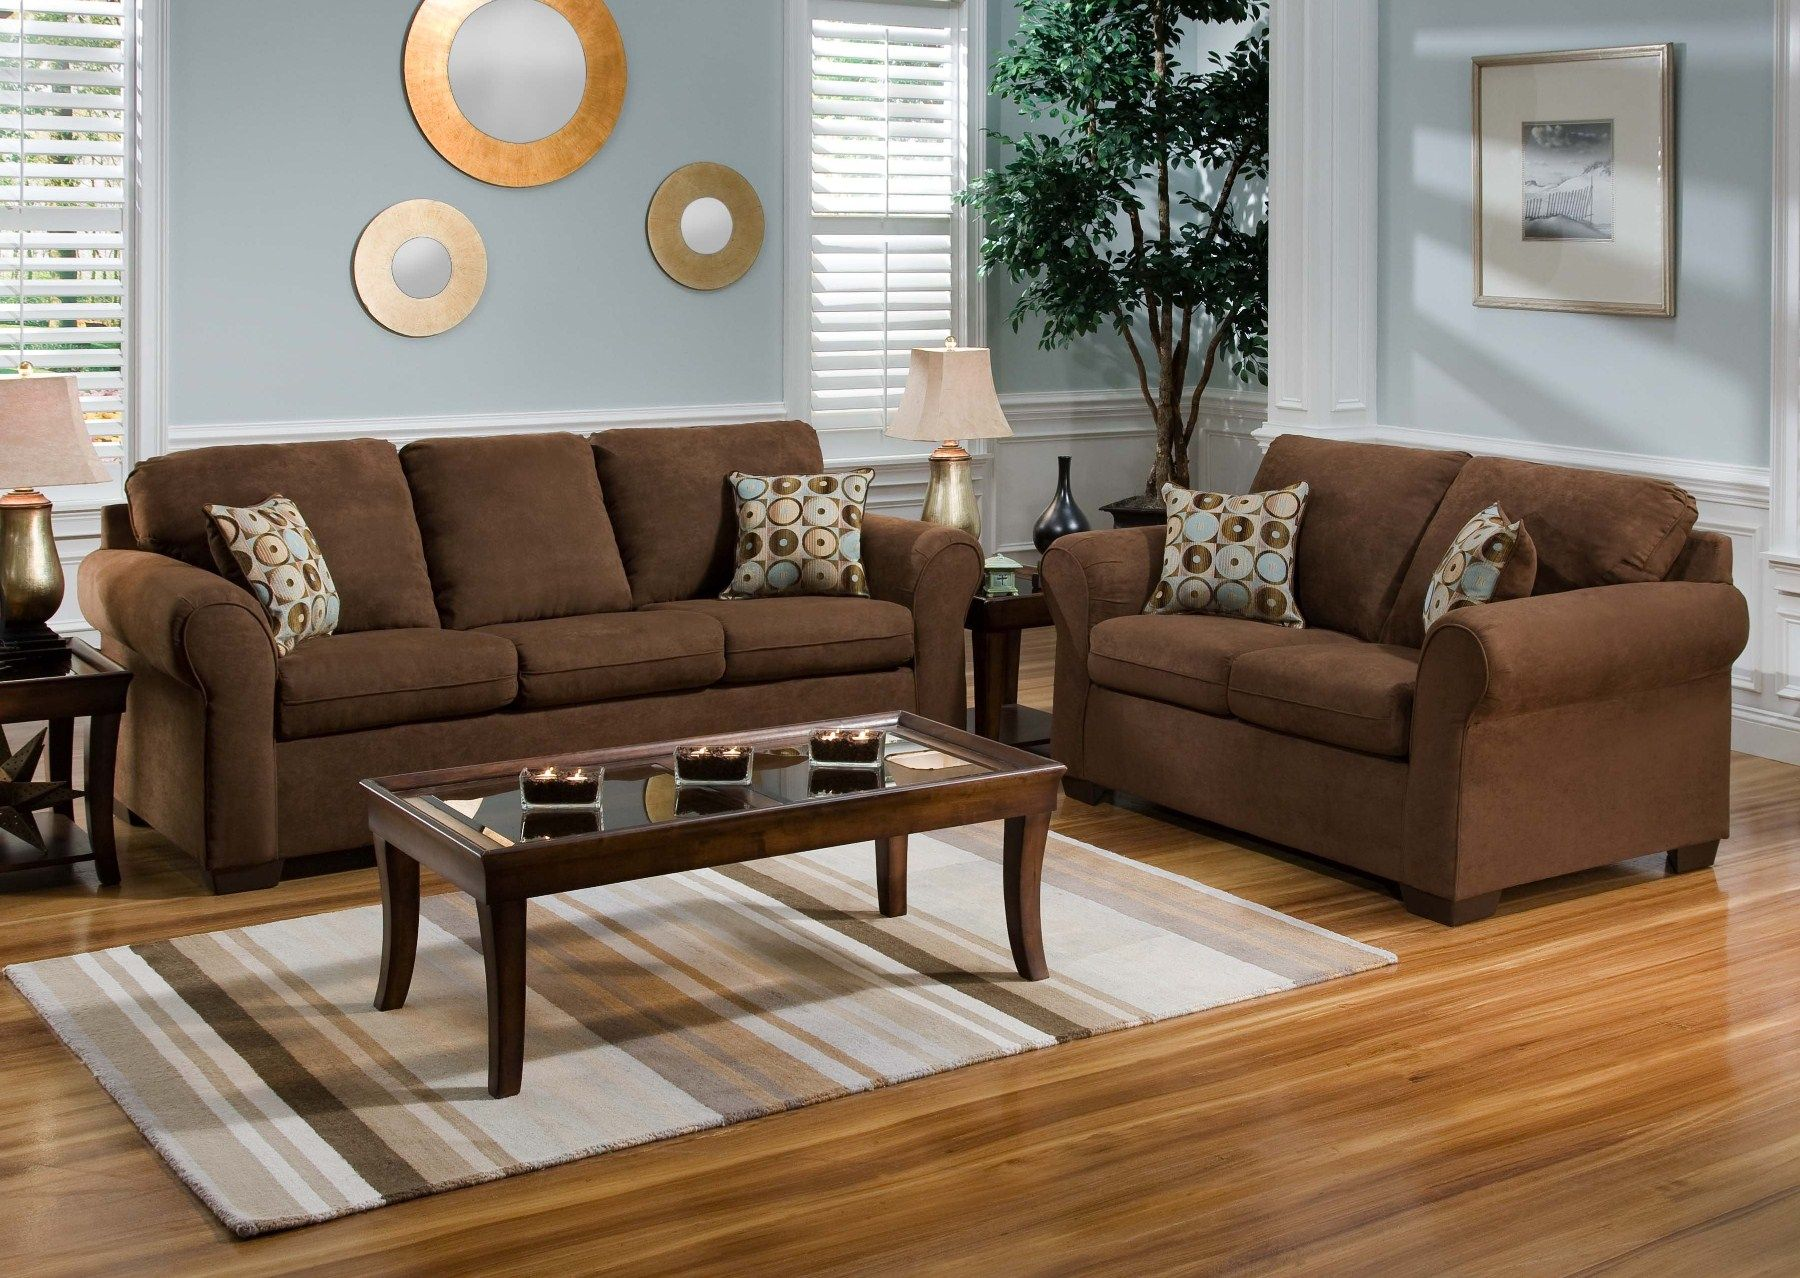 25 brown living room design ideas | brown couch living room